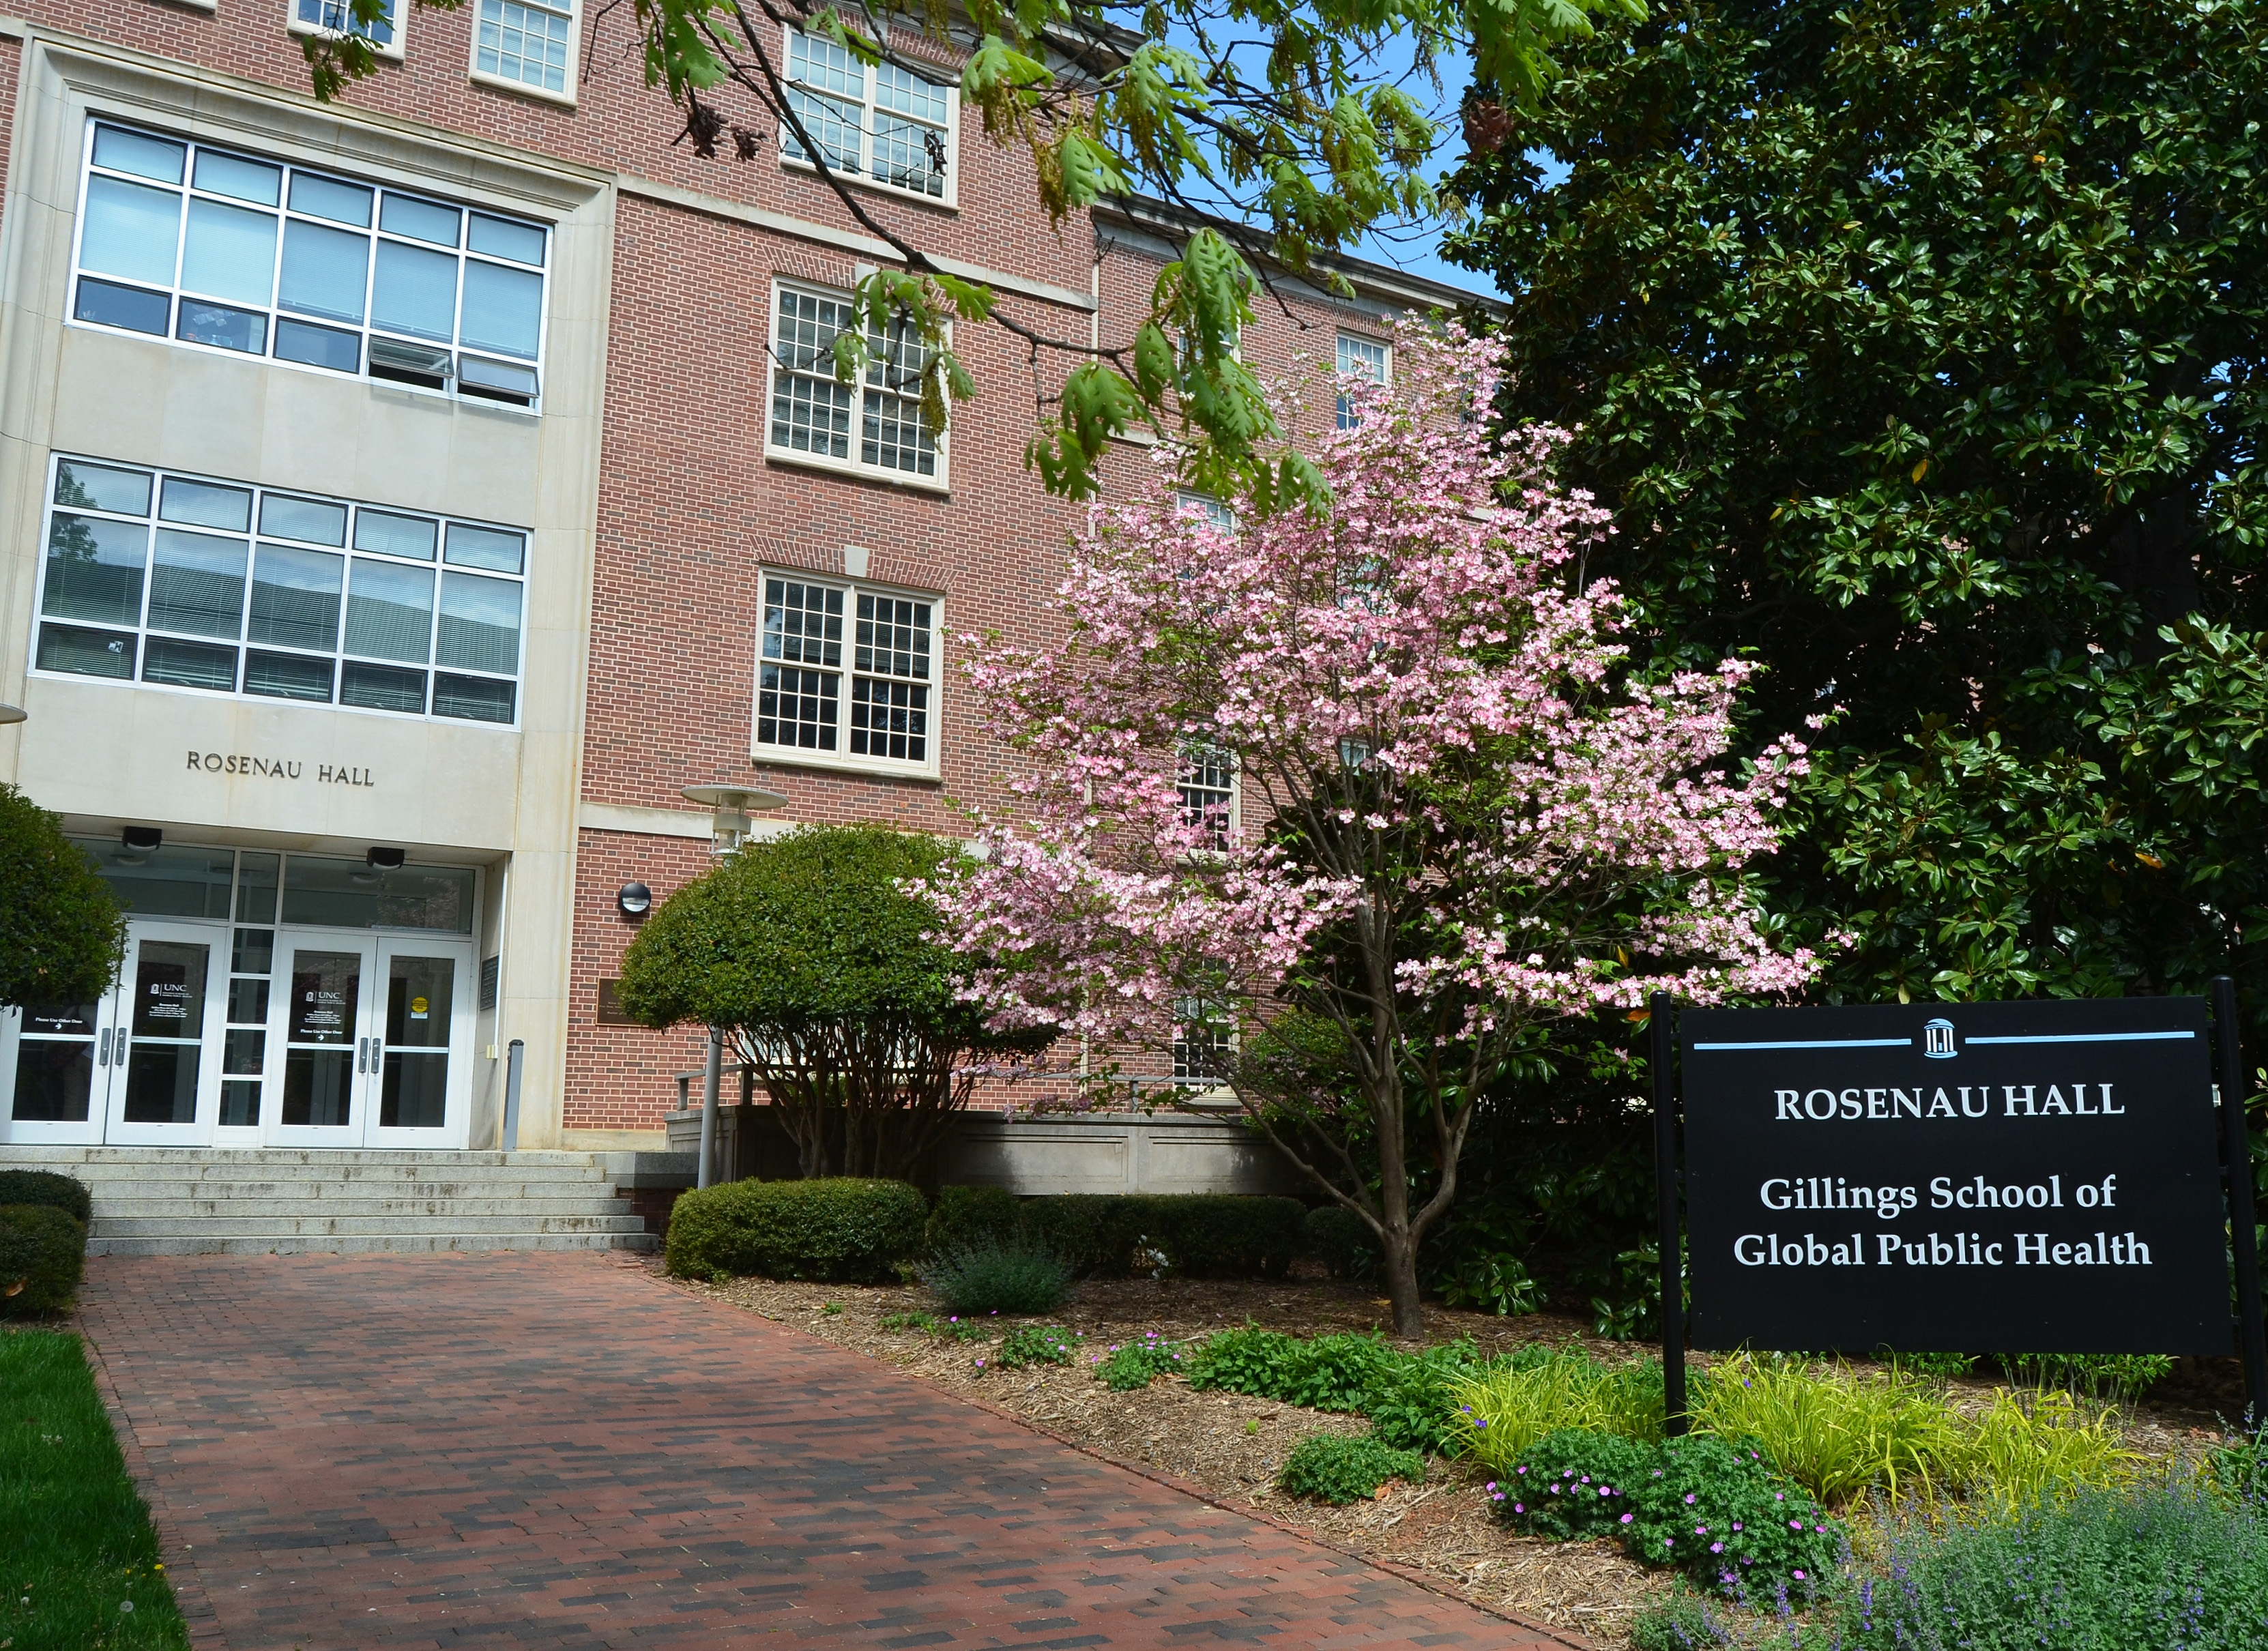 In spring, the dogwood trees bloom outside Rosenau Hall.